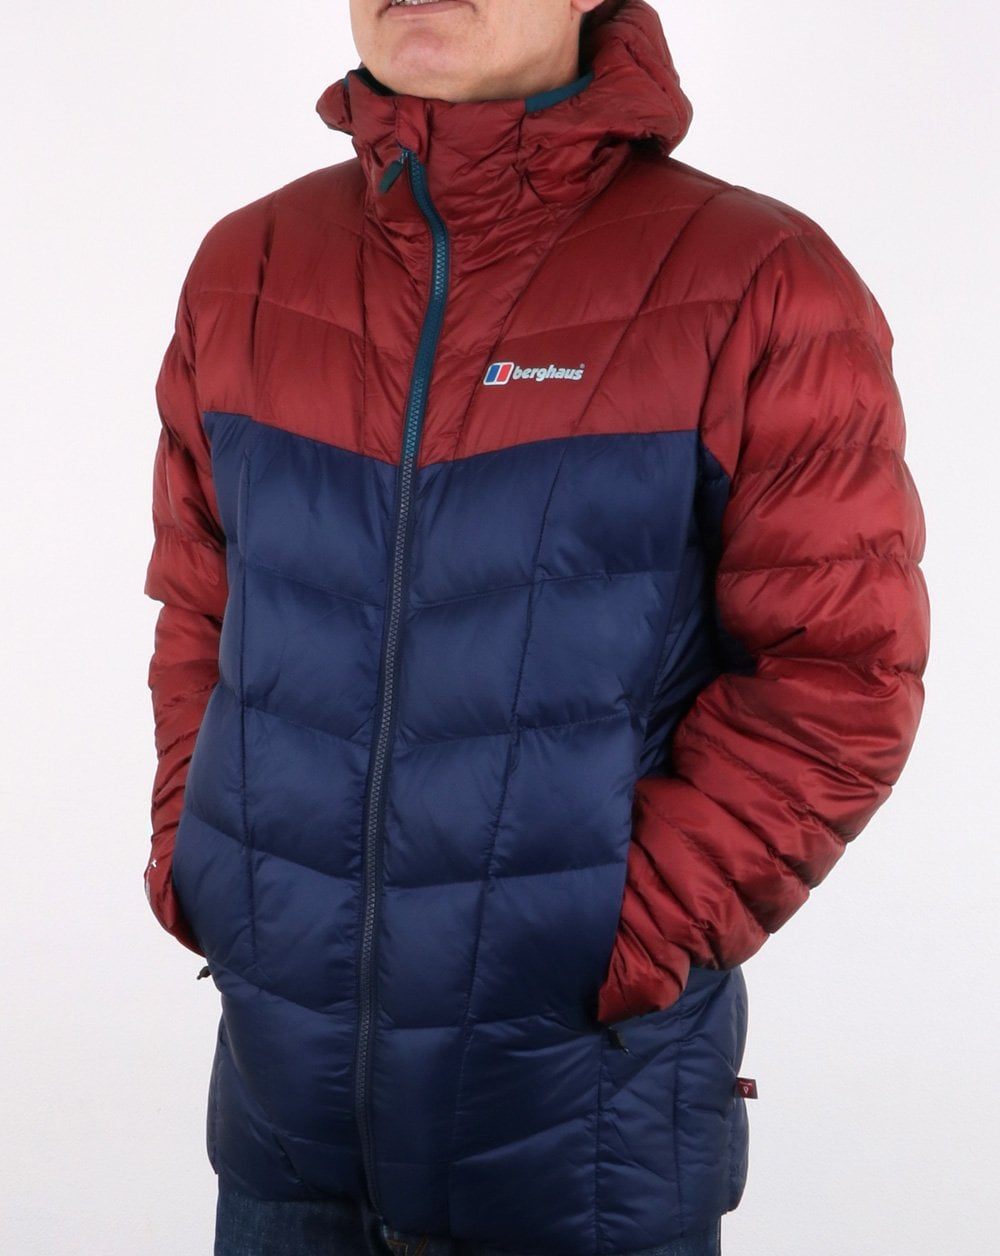 hot product choose genuine elegant shape berghaus puffa